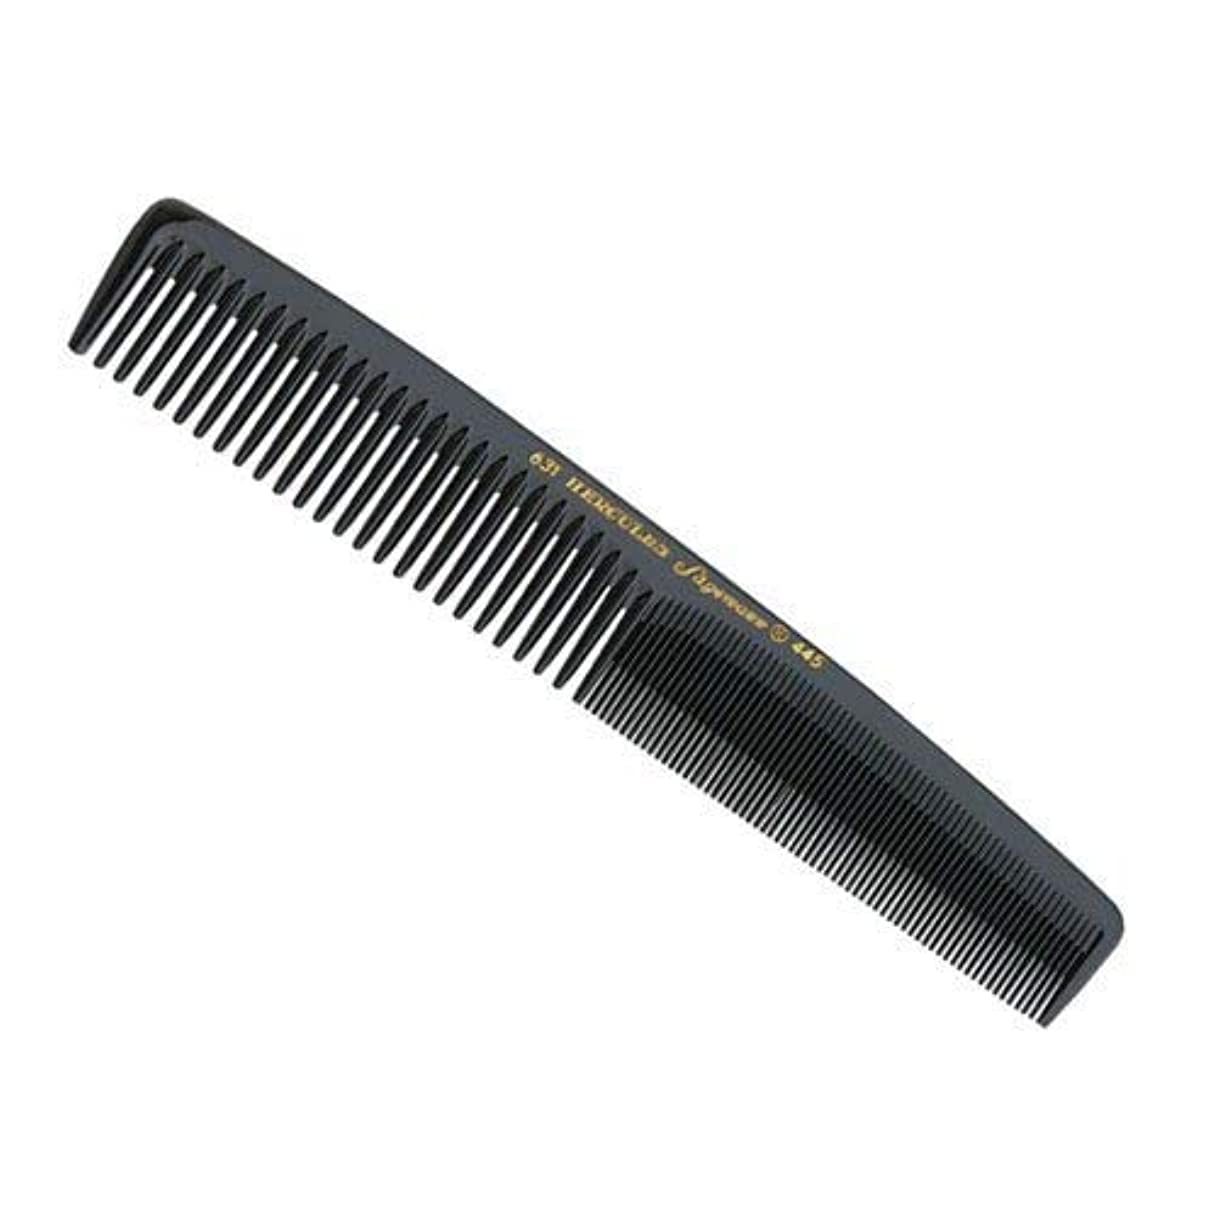 中で法的トチの実の木Hercules Sagemann Medium Waver Ladies Hair Comb, Length-17.8 cm [並行輸入品]